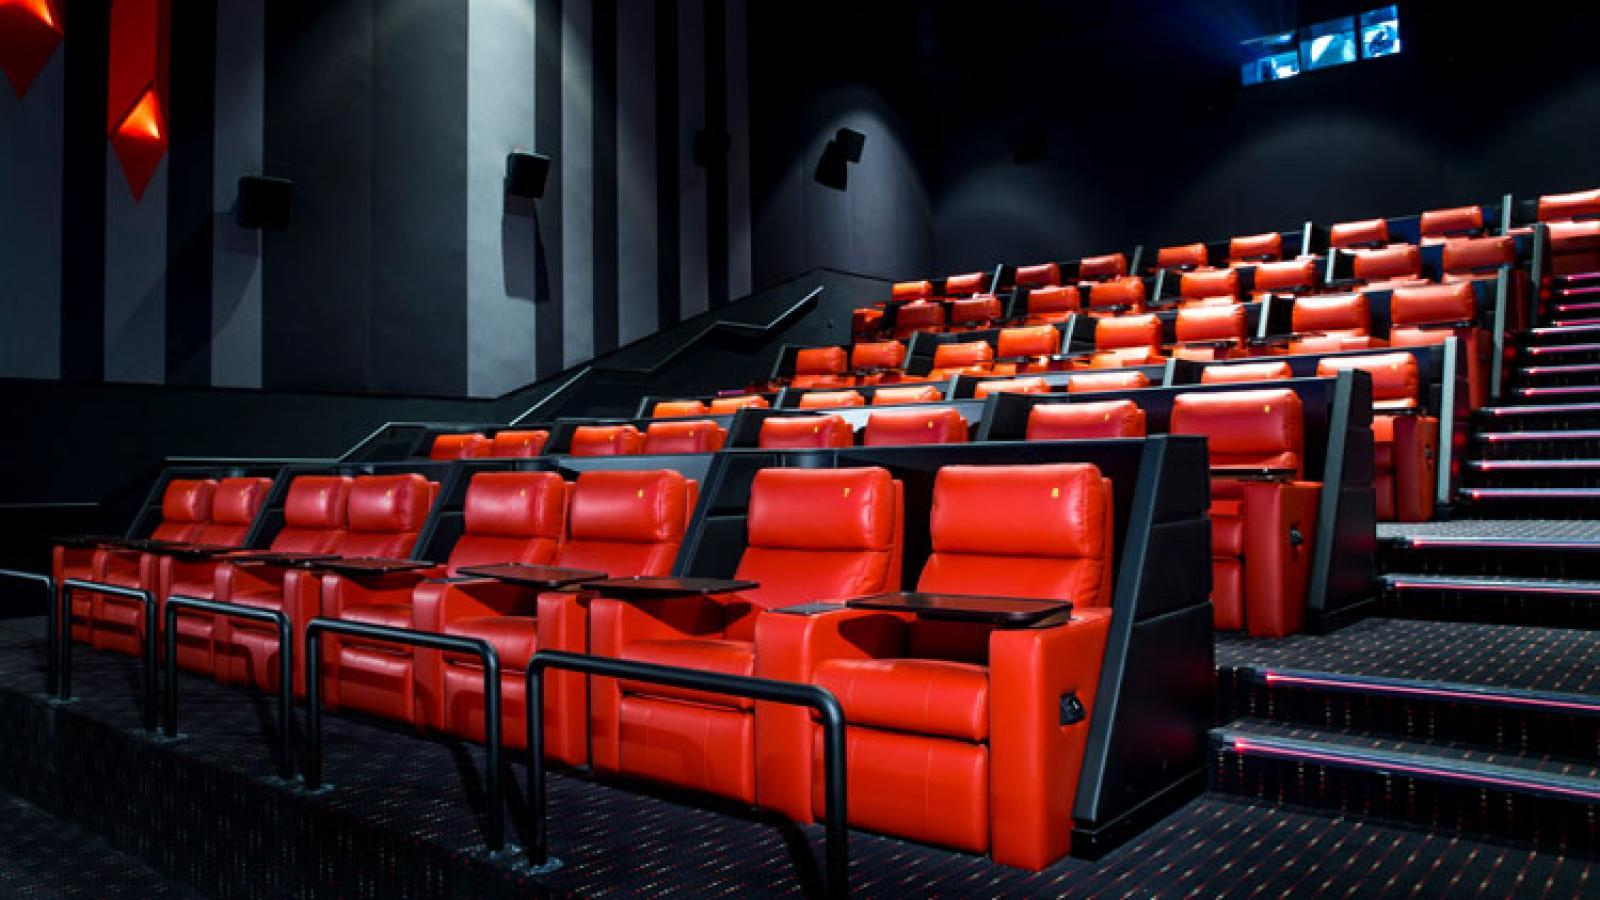 Cinemas, theatres, children's play areas, gyms, and wedding venues will be closed from March 13